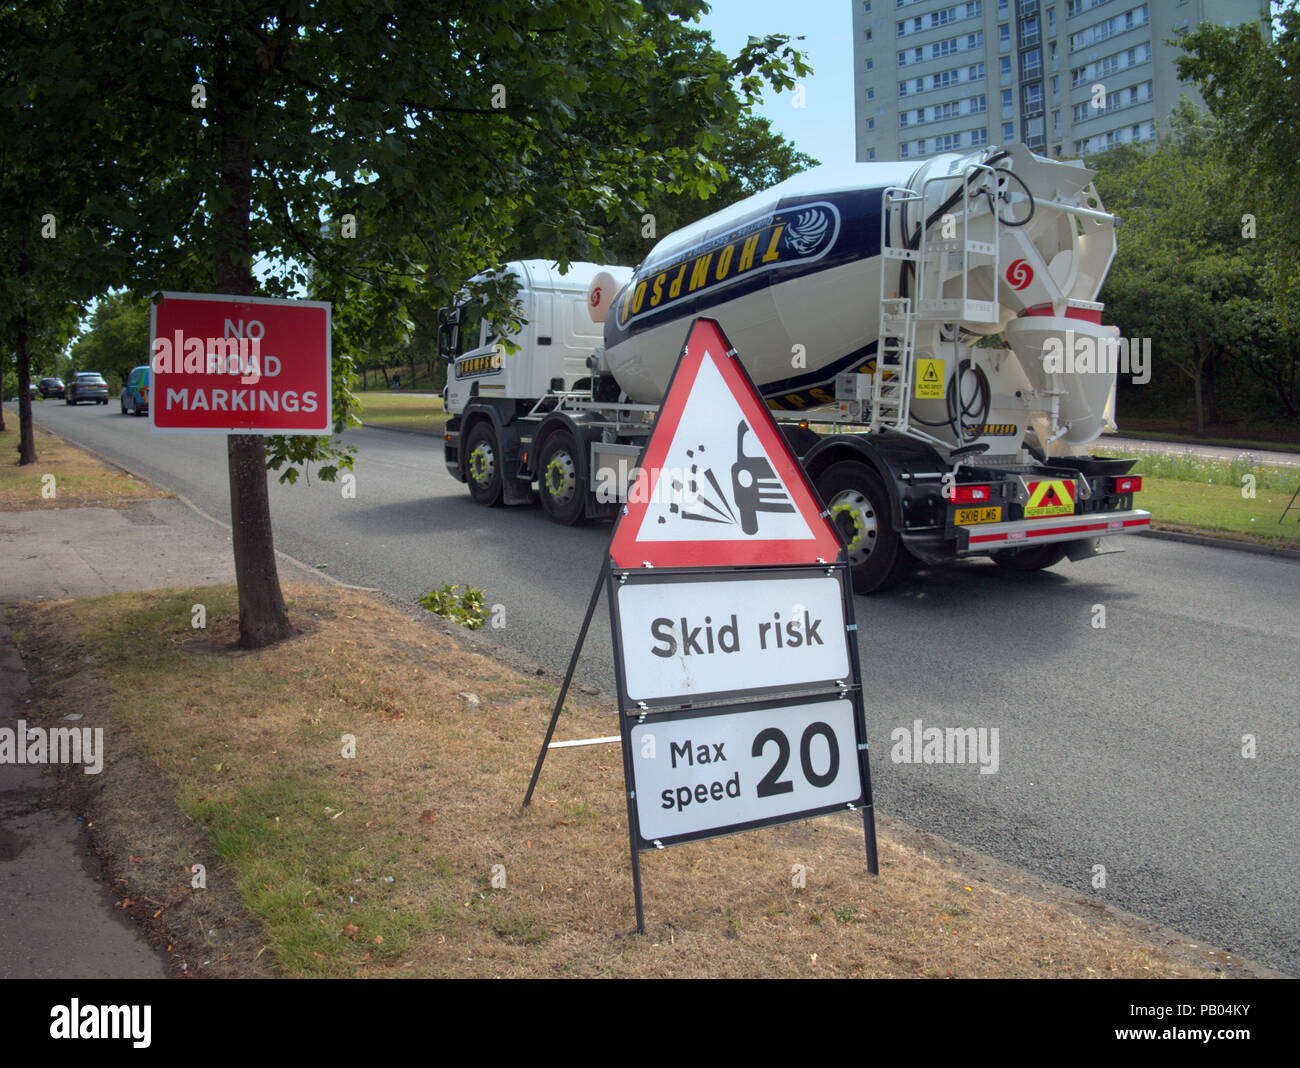 cement mixer truck passing road signs skid risk max speed 20 and no road markings - Stock Image